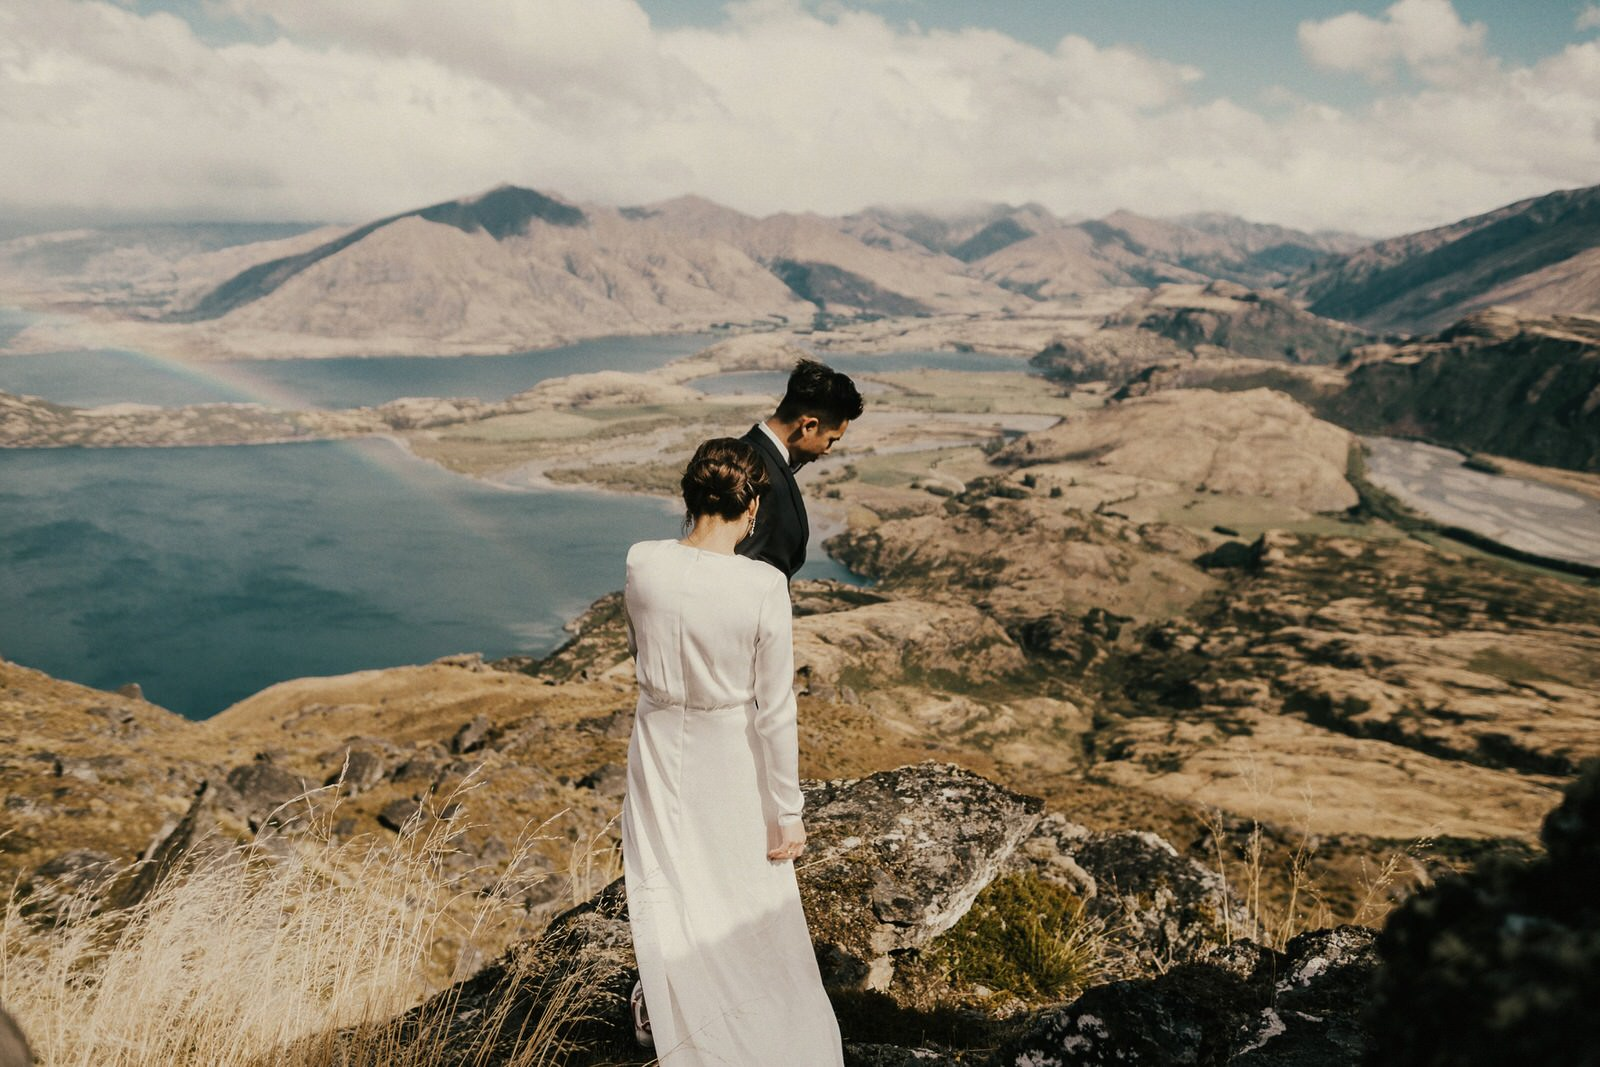 Pre-wedding photos at Lookout Hill, Lake Wanaka, New Zealand